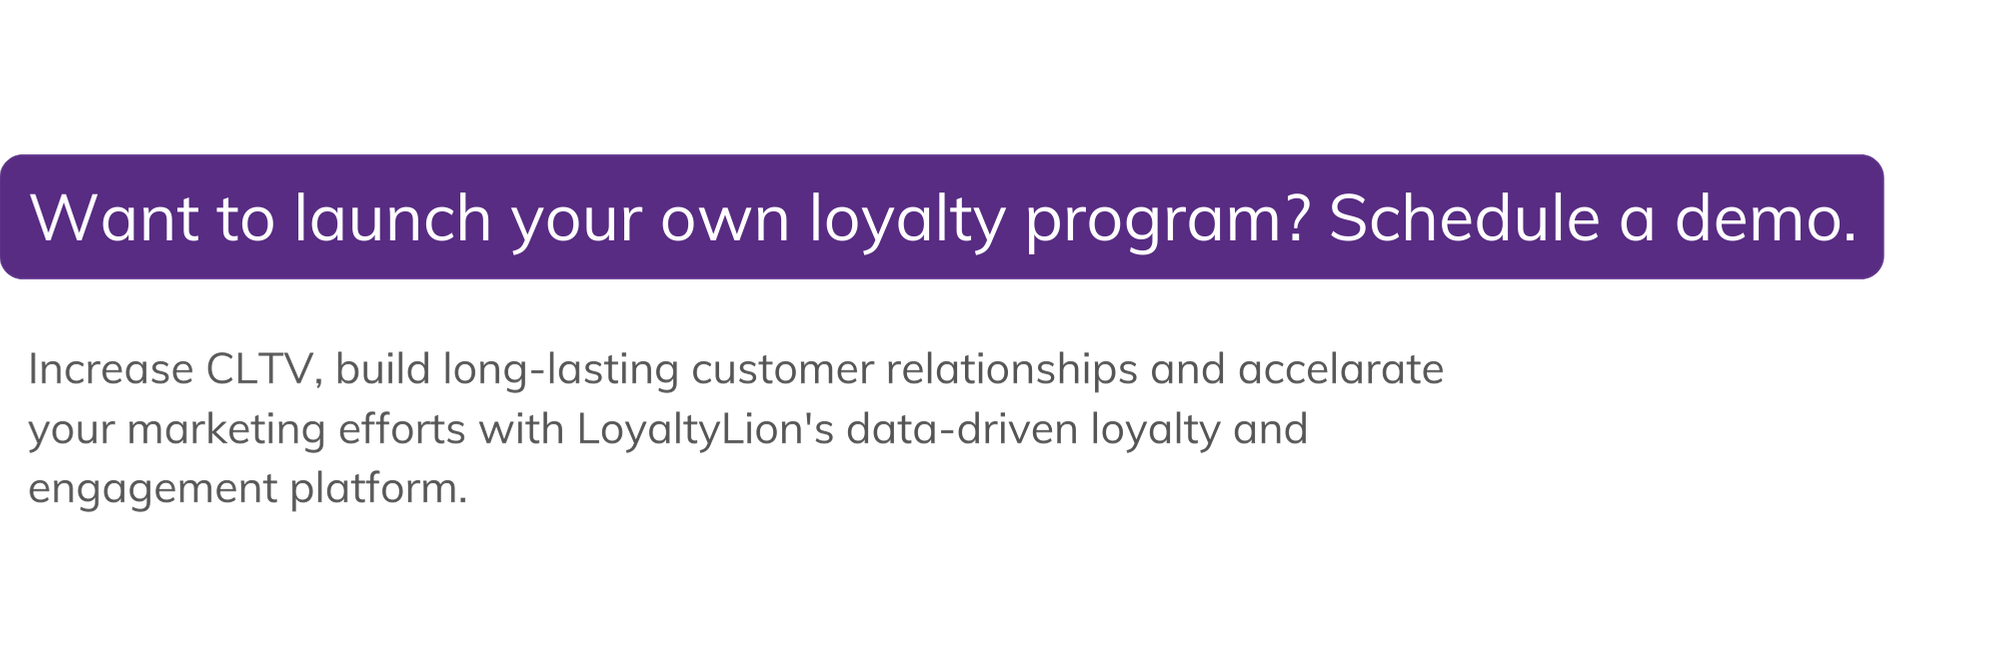 I Want To Learn More About Customer Loyalty Programs. Schedulemy Demo.